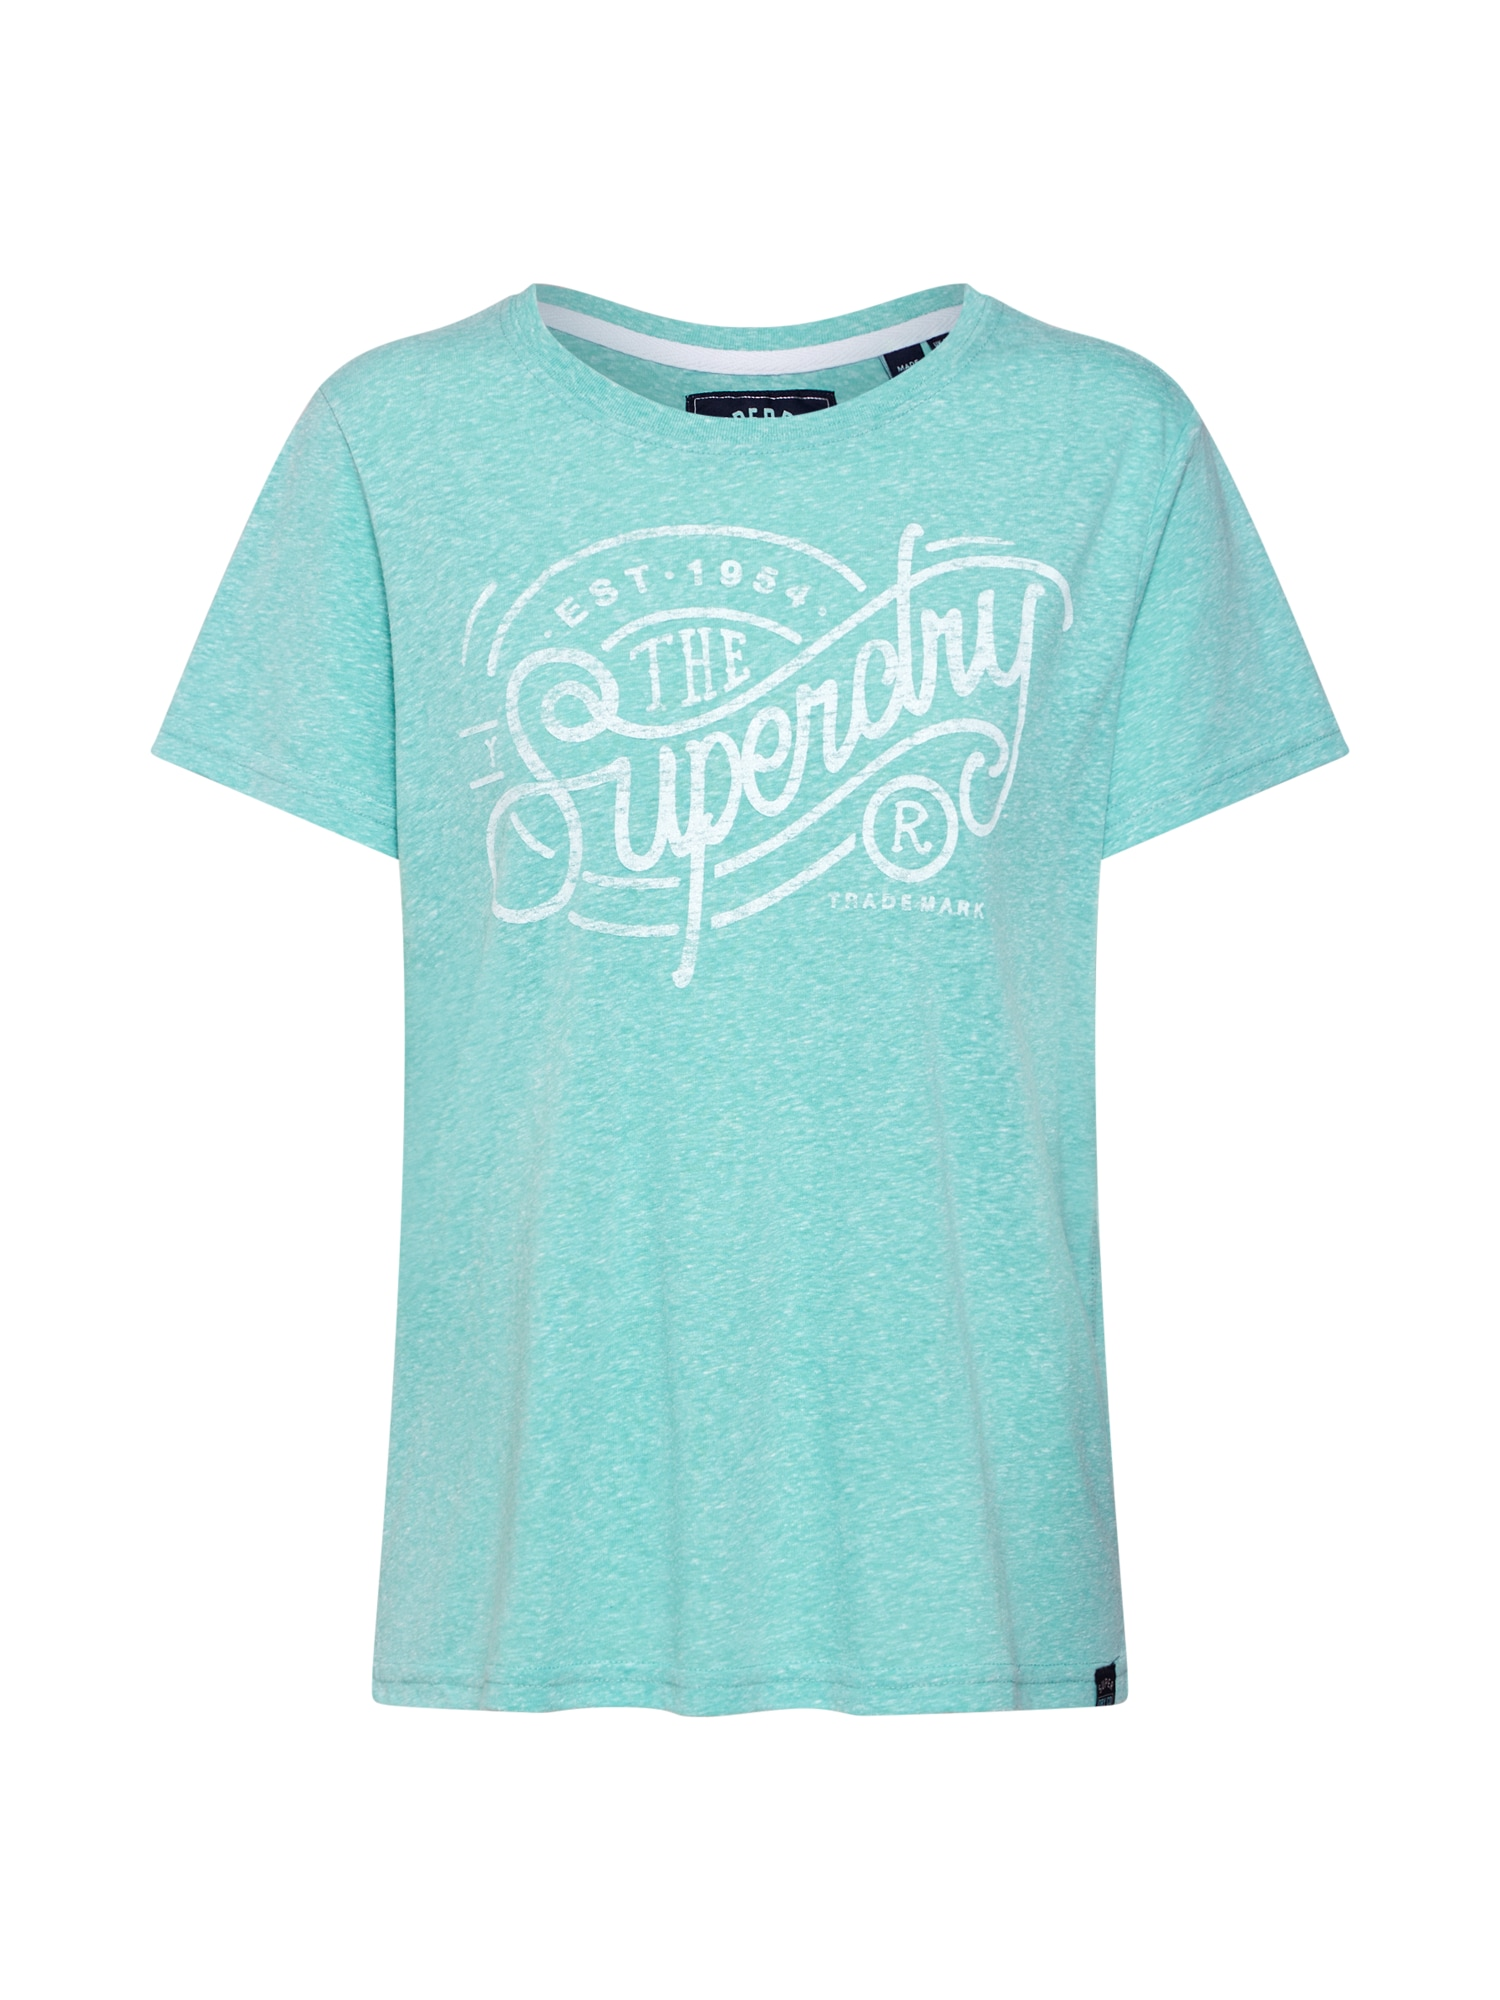 Tričko Established Trademark nefritová bílá Superdry